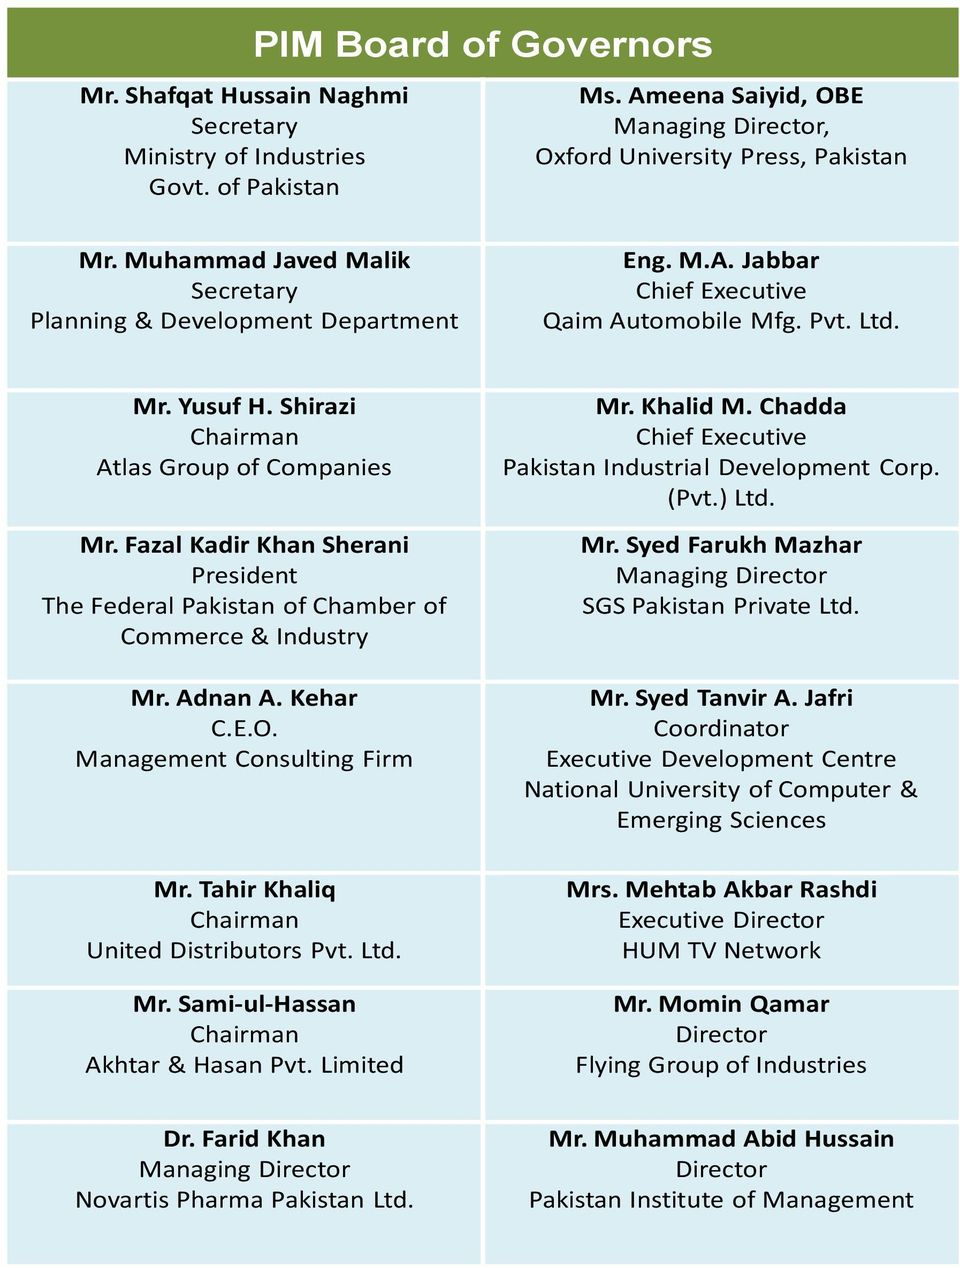 Fazal Kadir Khan Sherani President The Federal Pakistan of Chamber of Commerce & Industry Mr. Adnan A. Kehar C.E.O. Management Consulting Firm Mr. Tahir Khaliq Chairman United Distributors Pvt. Ltd.